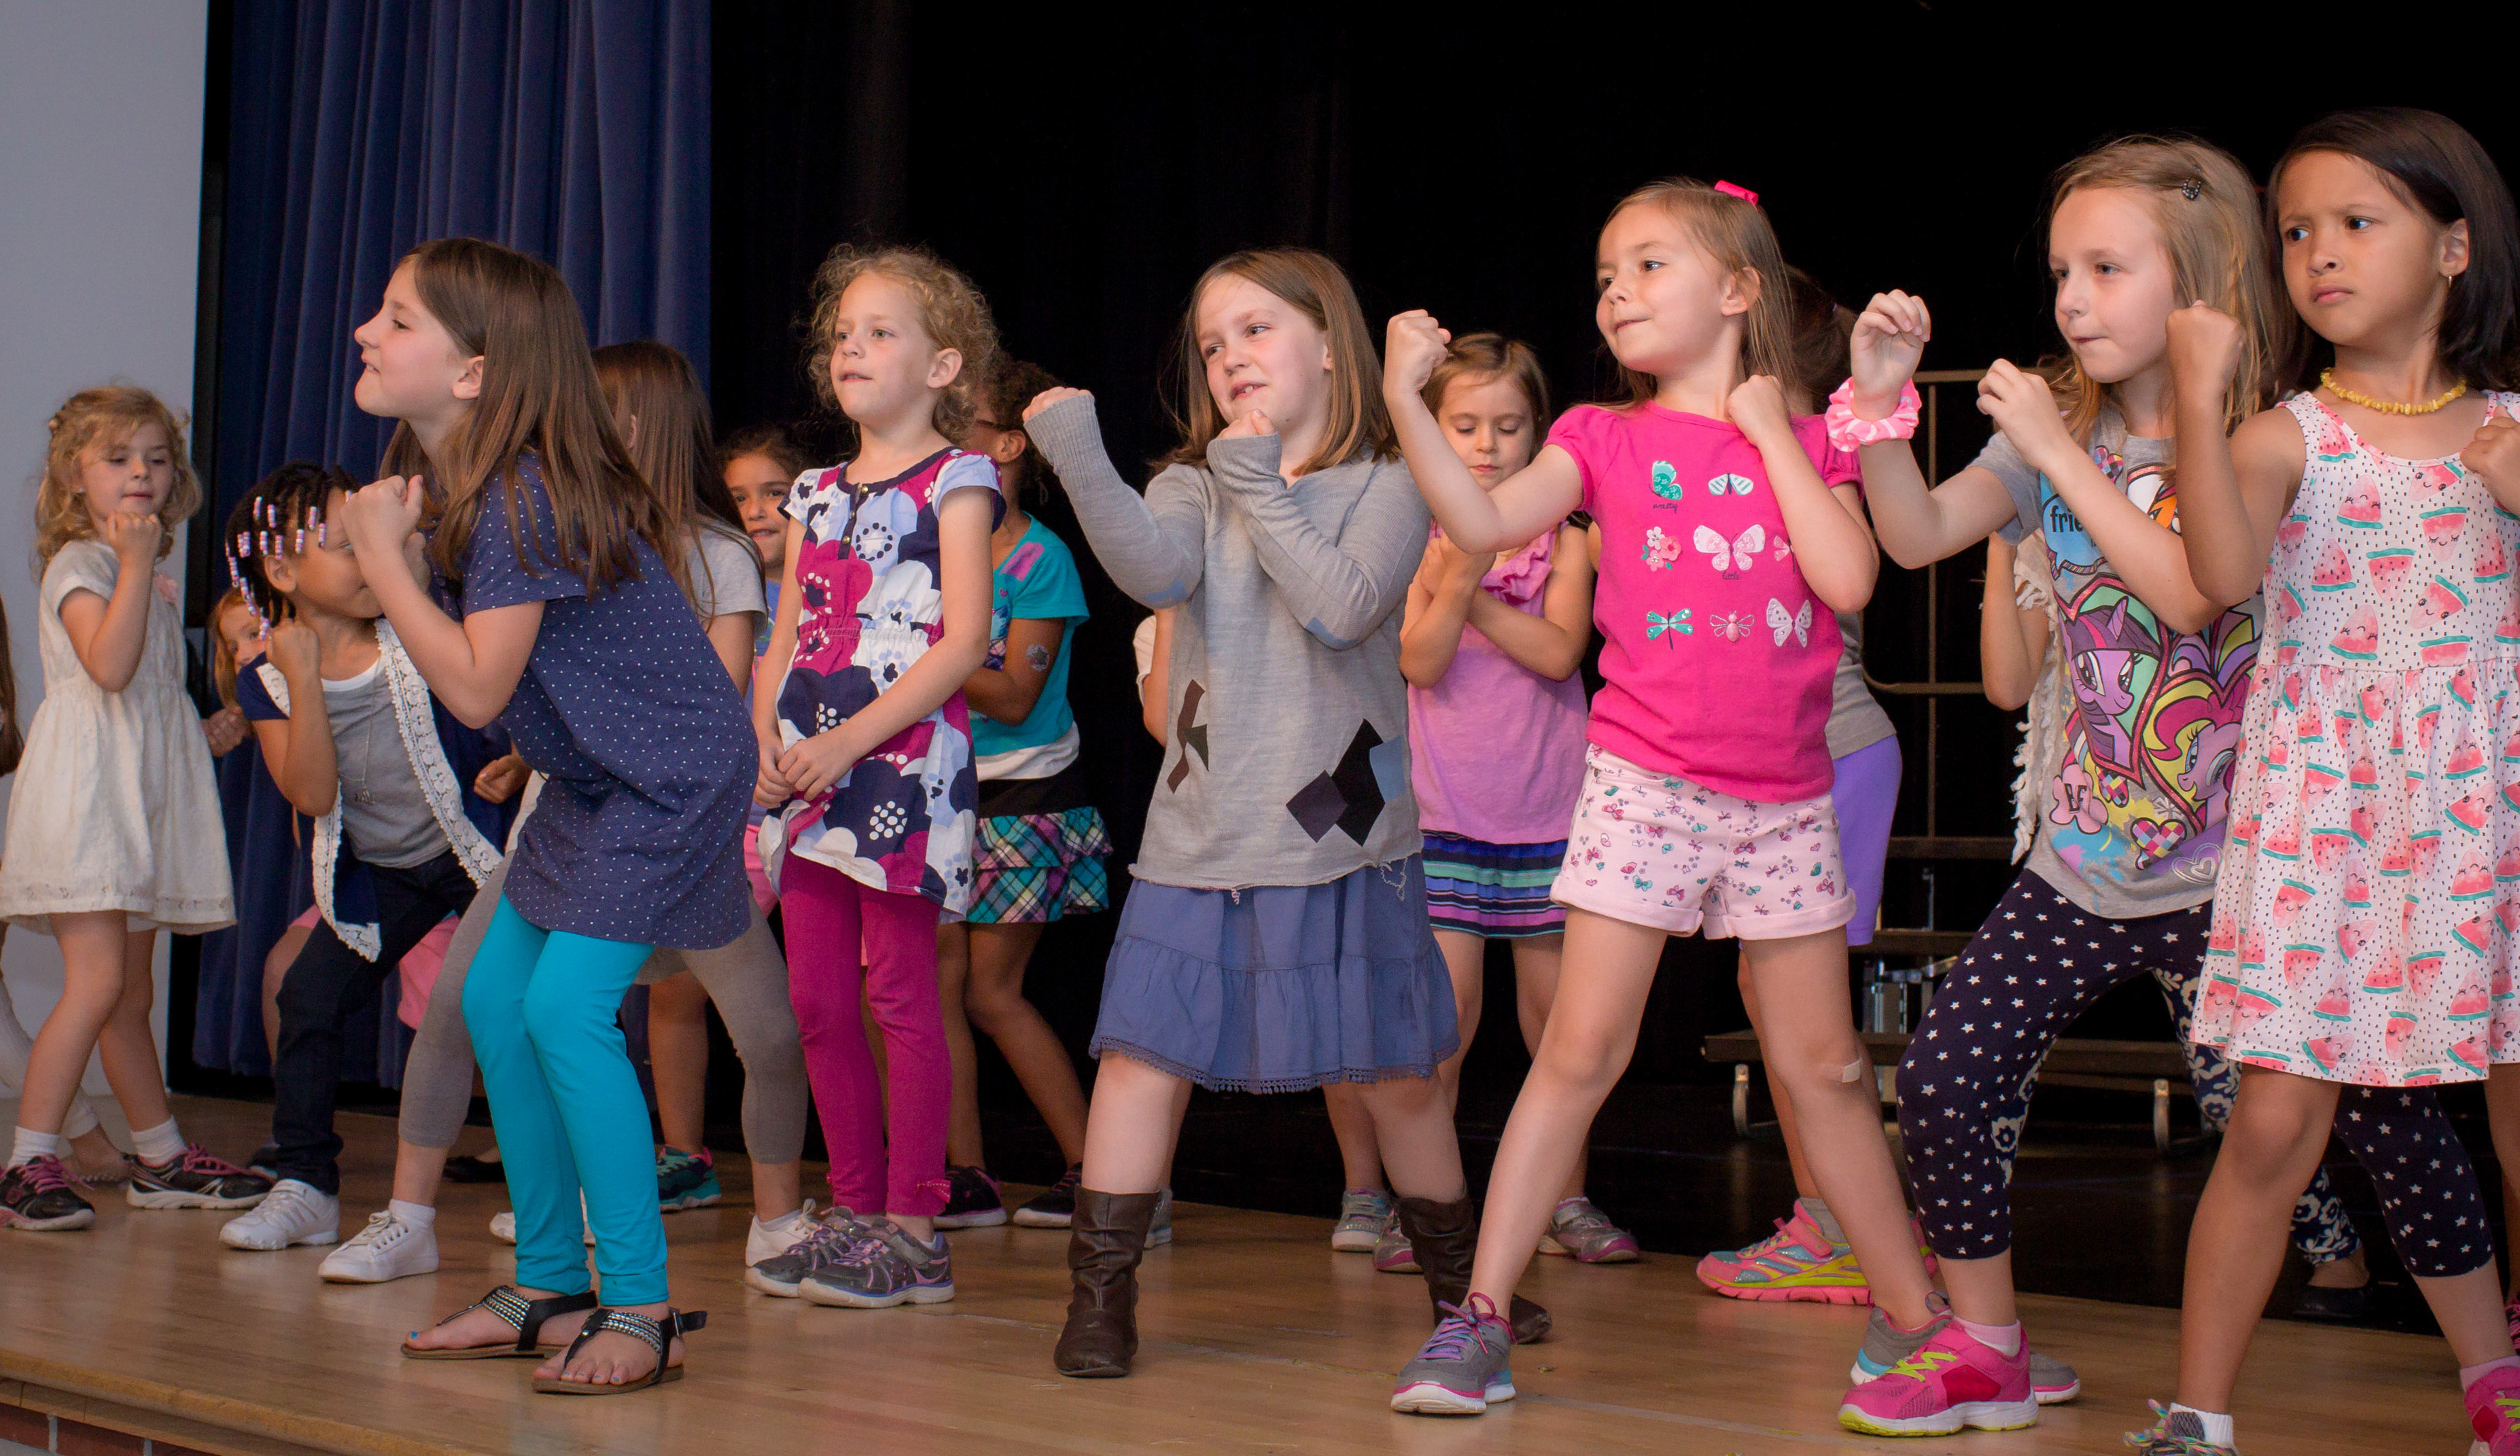 Bartram Springs Elementary provides musical theatre opportunities